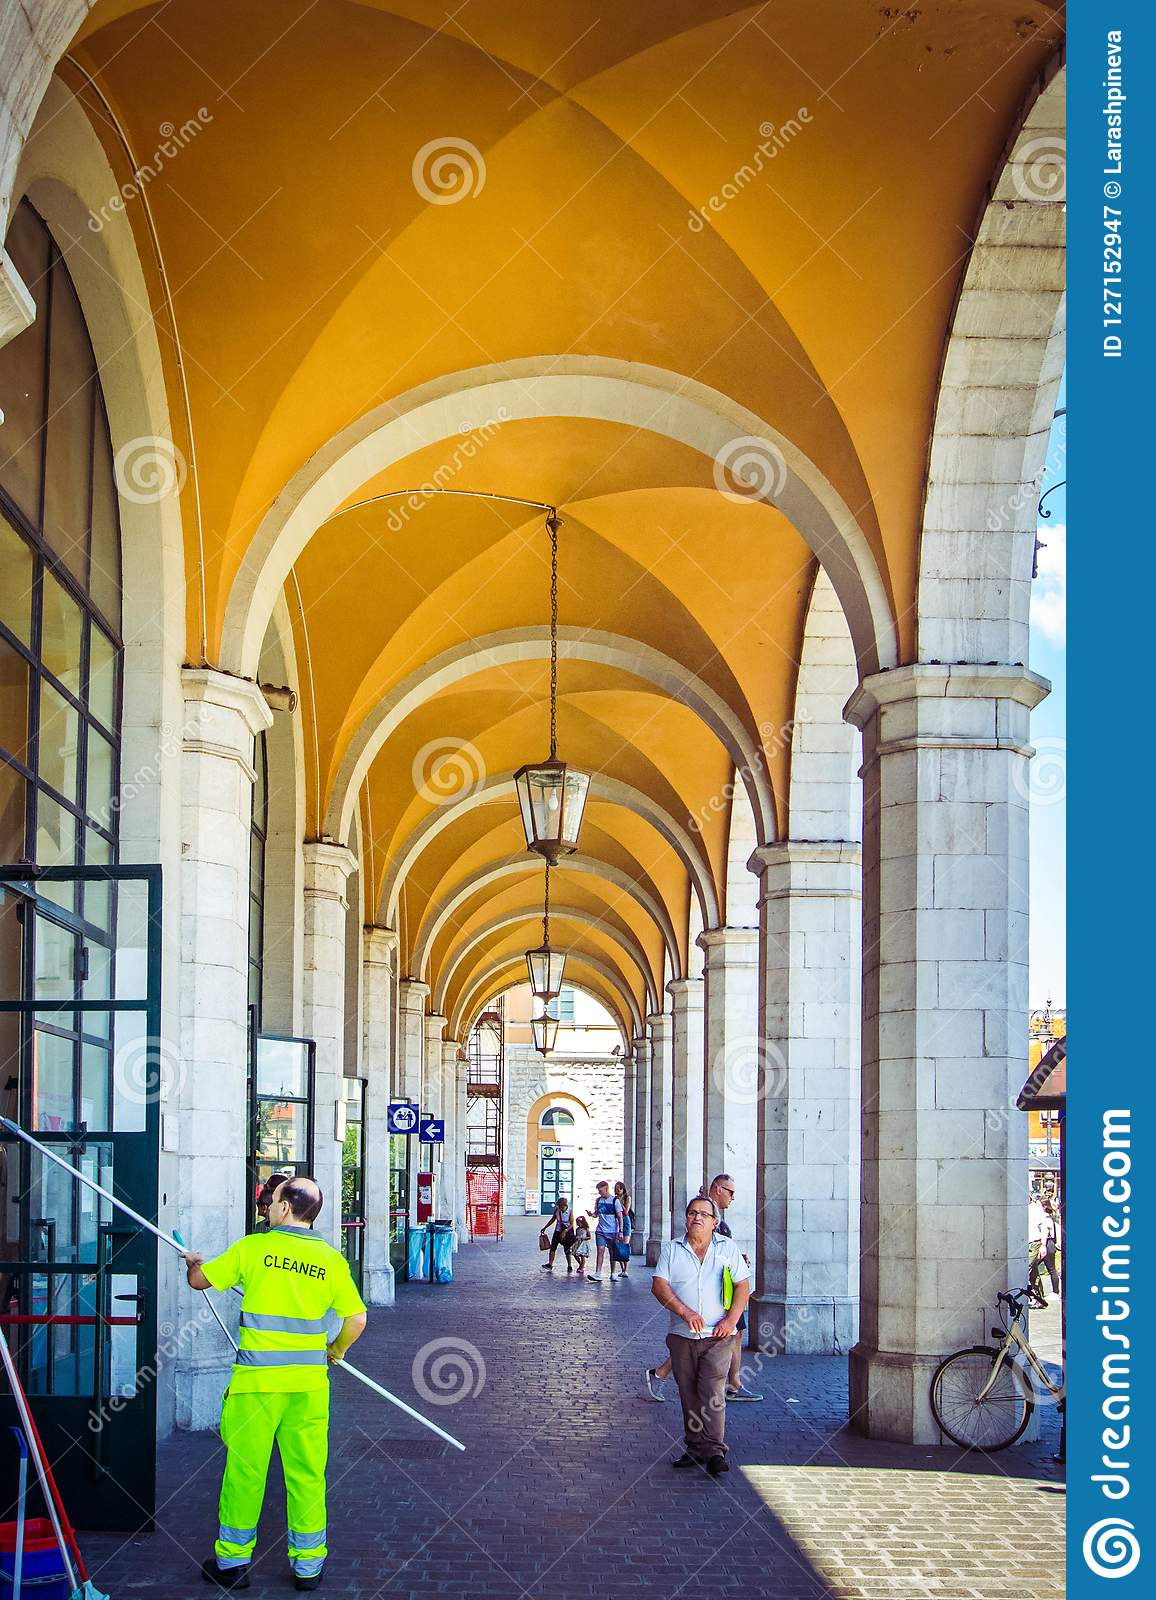 Beautiful station in Pisa with white pillars and yellow arches, with working cleaners and tourists, Pisa, Italy